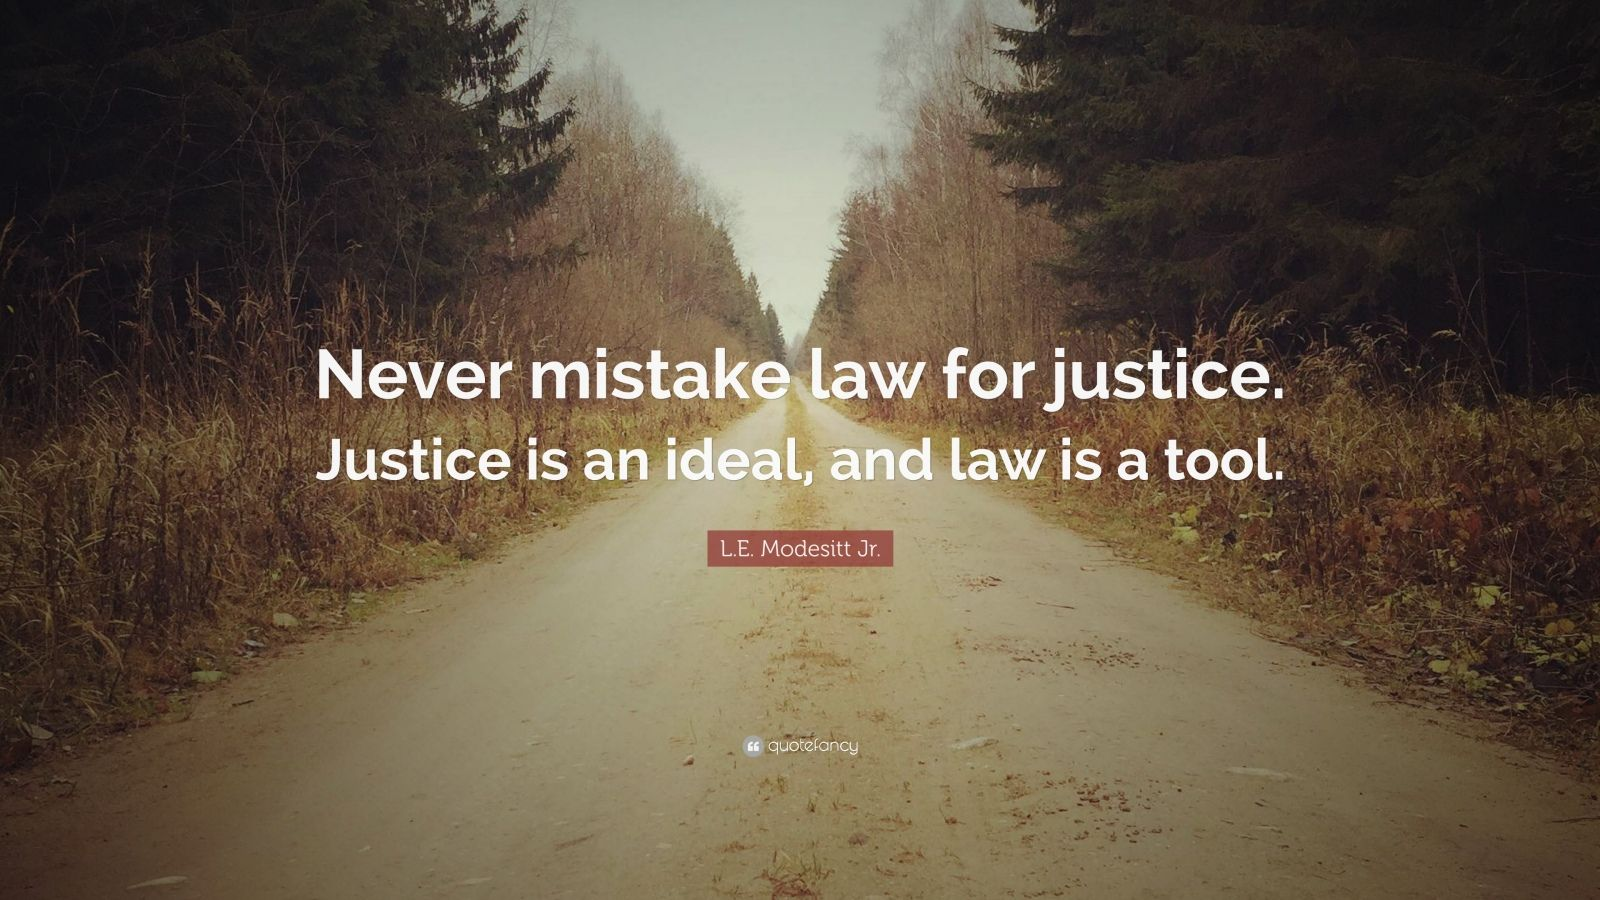 "Justice Quotes: ""Never mistake law for justice. Justice is an ideal, and law is a tool."" — L.E. Modesitt Jr."